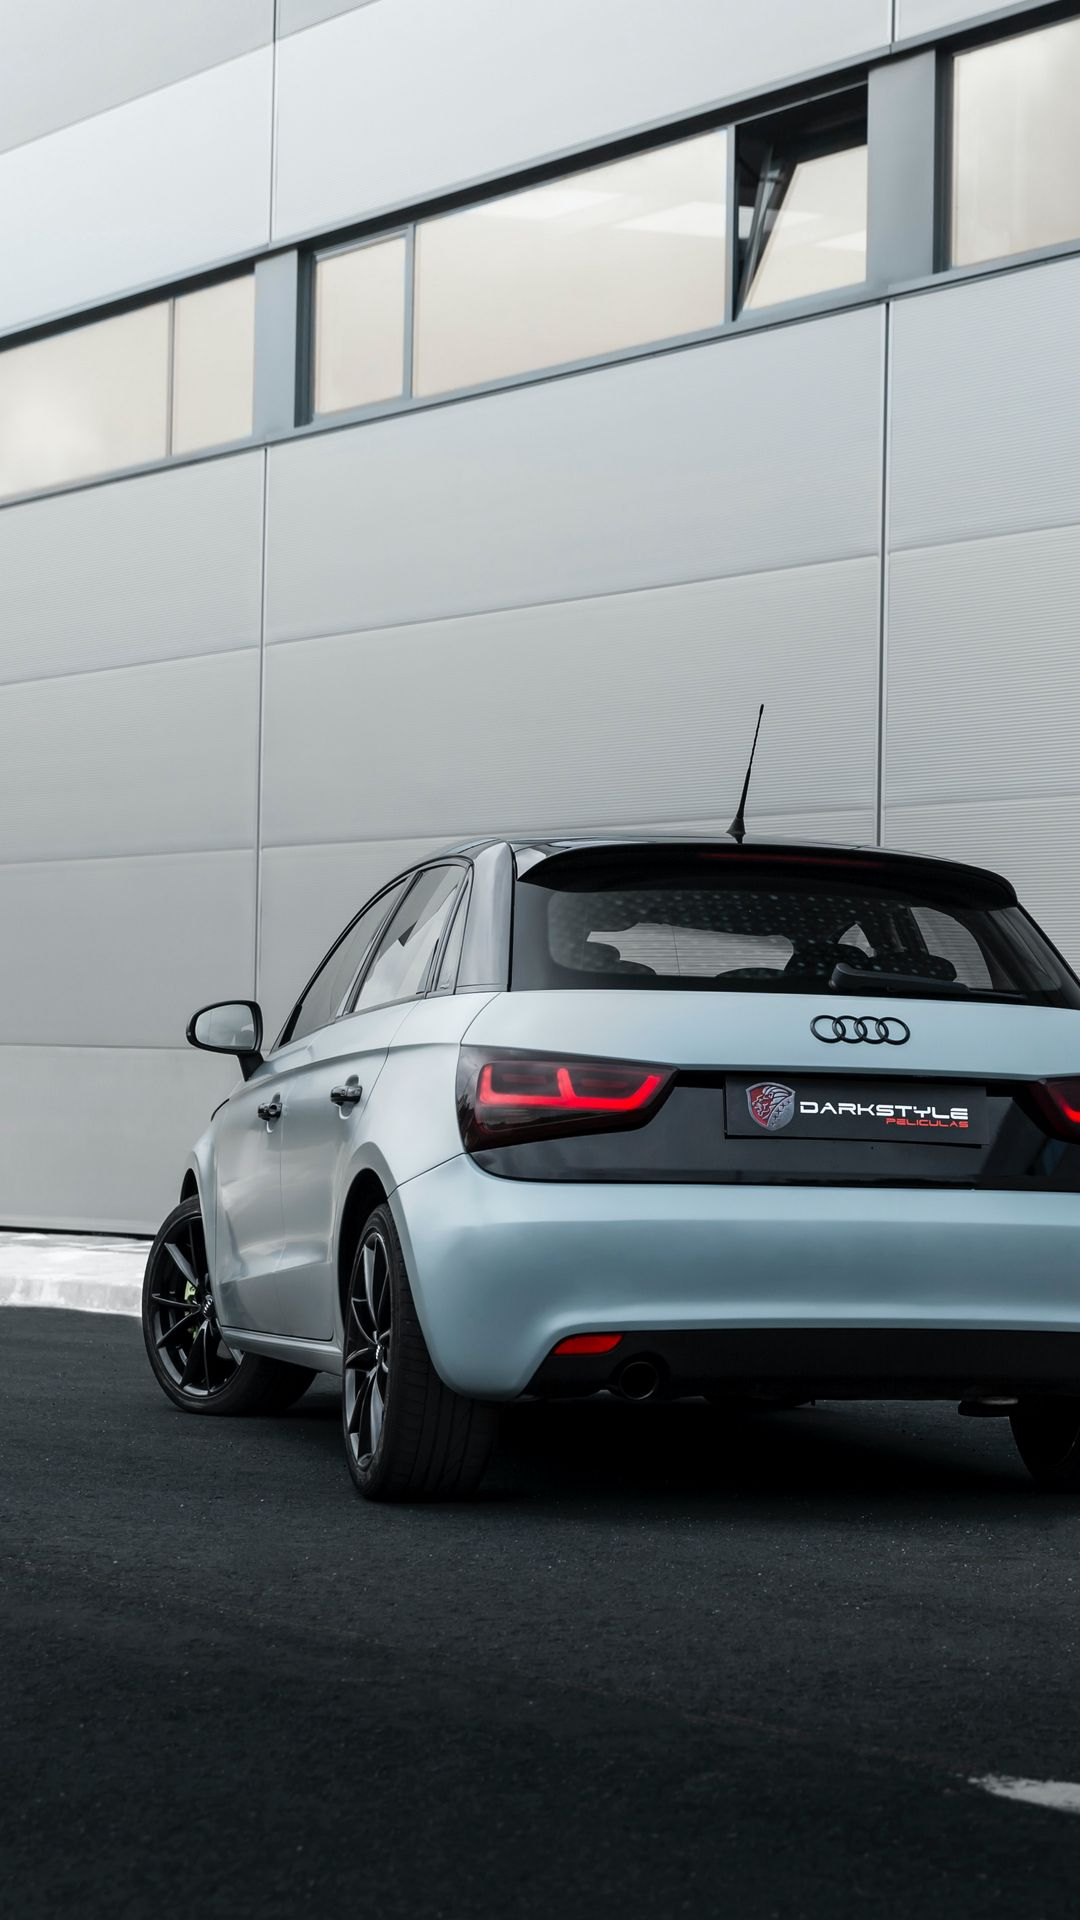 Audi Wallpapers For Mobile Download